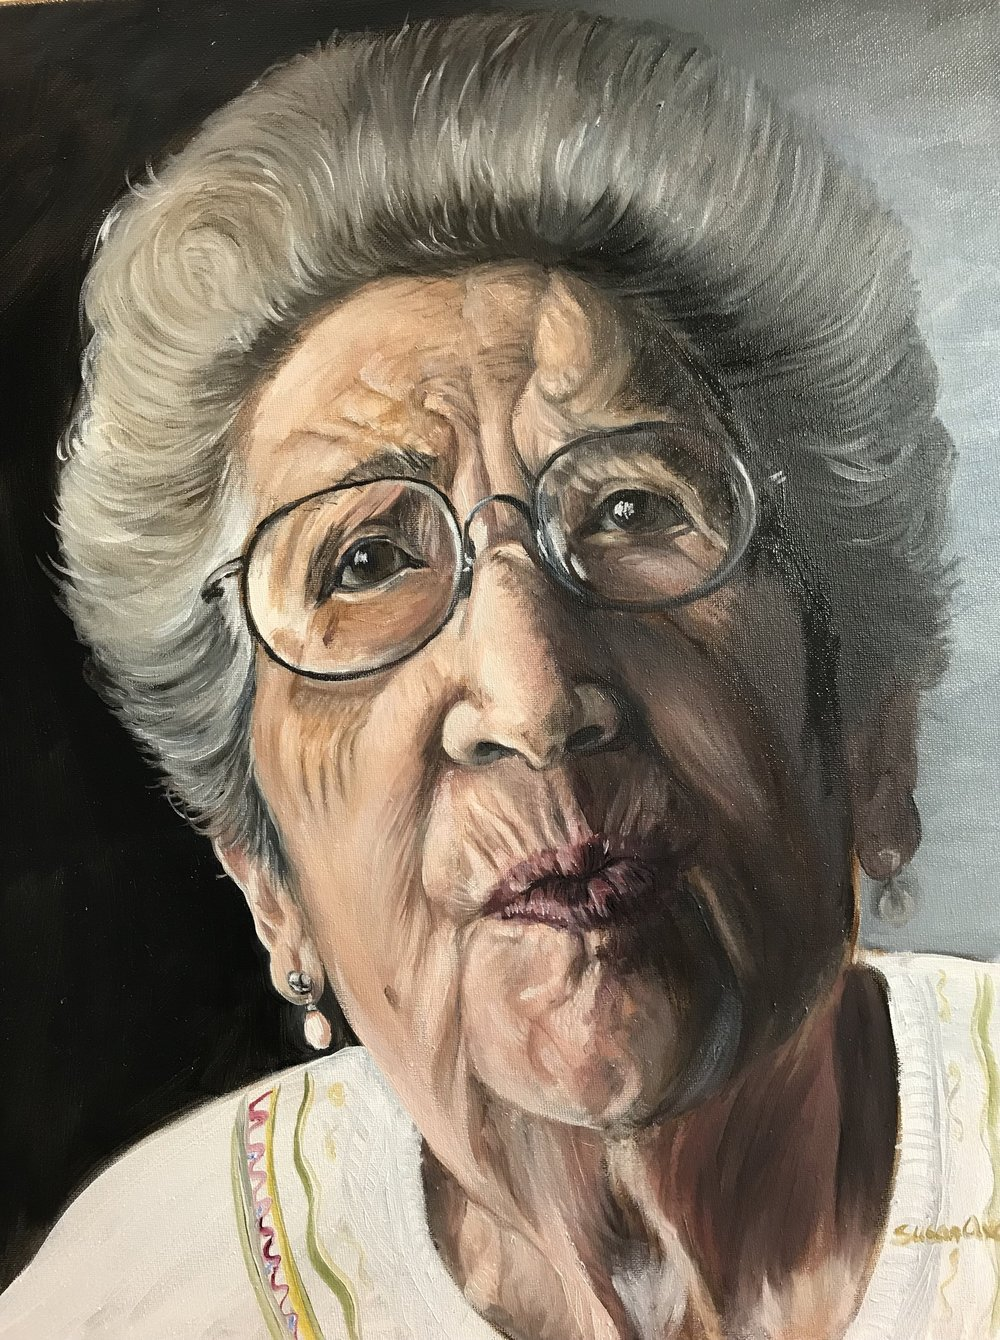 Noemi Ban- Holocaust survivor age 95. Oils on Canvas 16x20